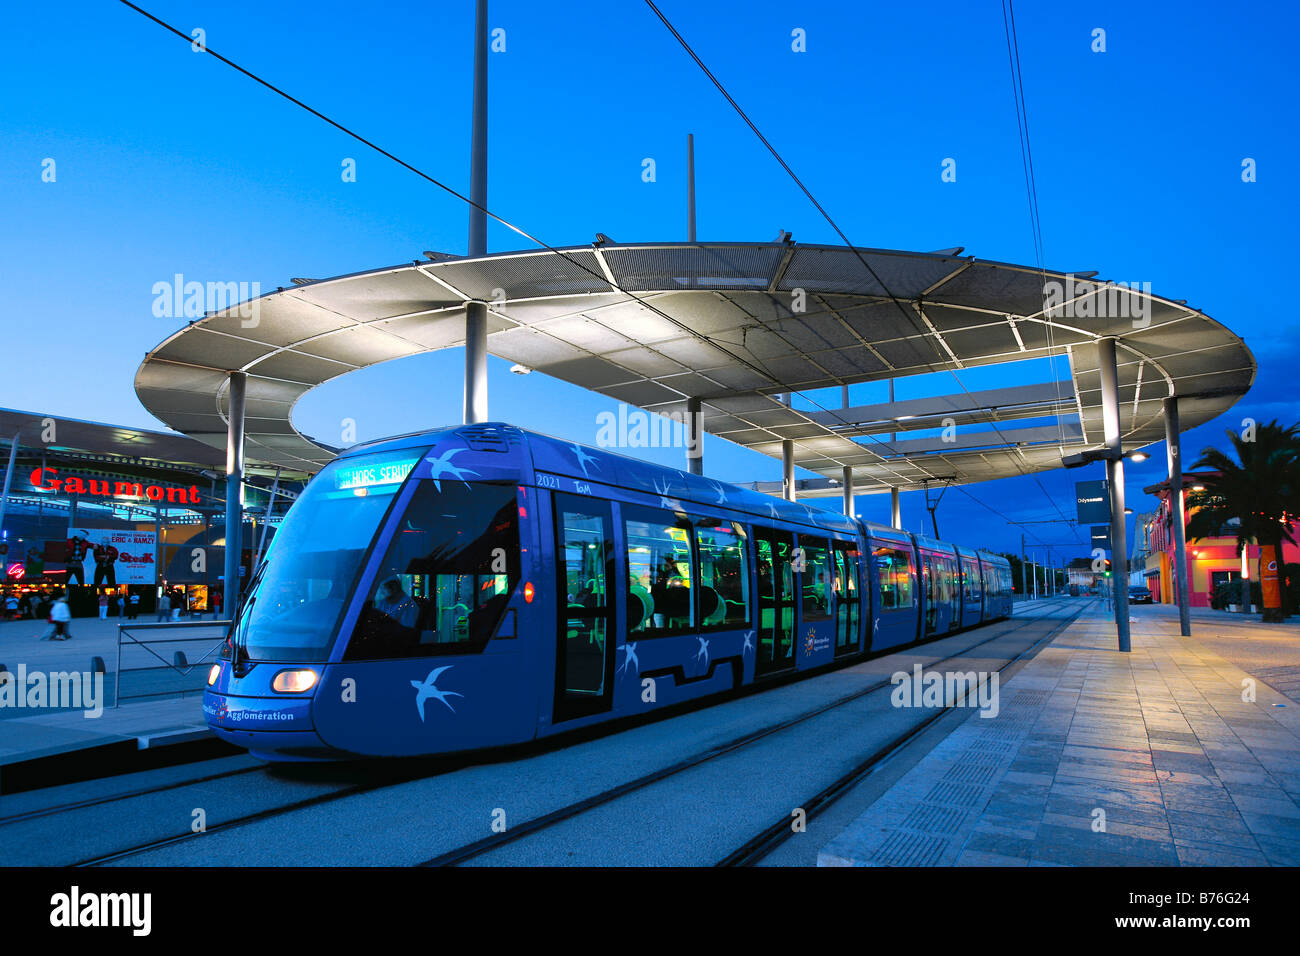 tramway odysseum montpellier france banque d 39 images photo stock 21657276 alamy. Black Bedroom Furniture Sets. Home Design Ideas